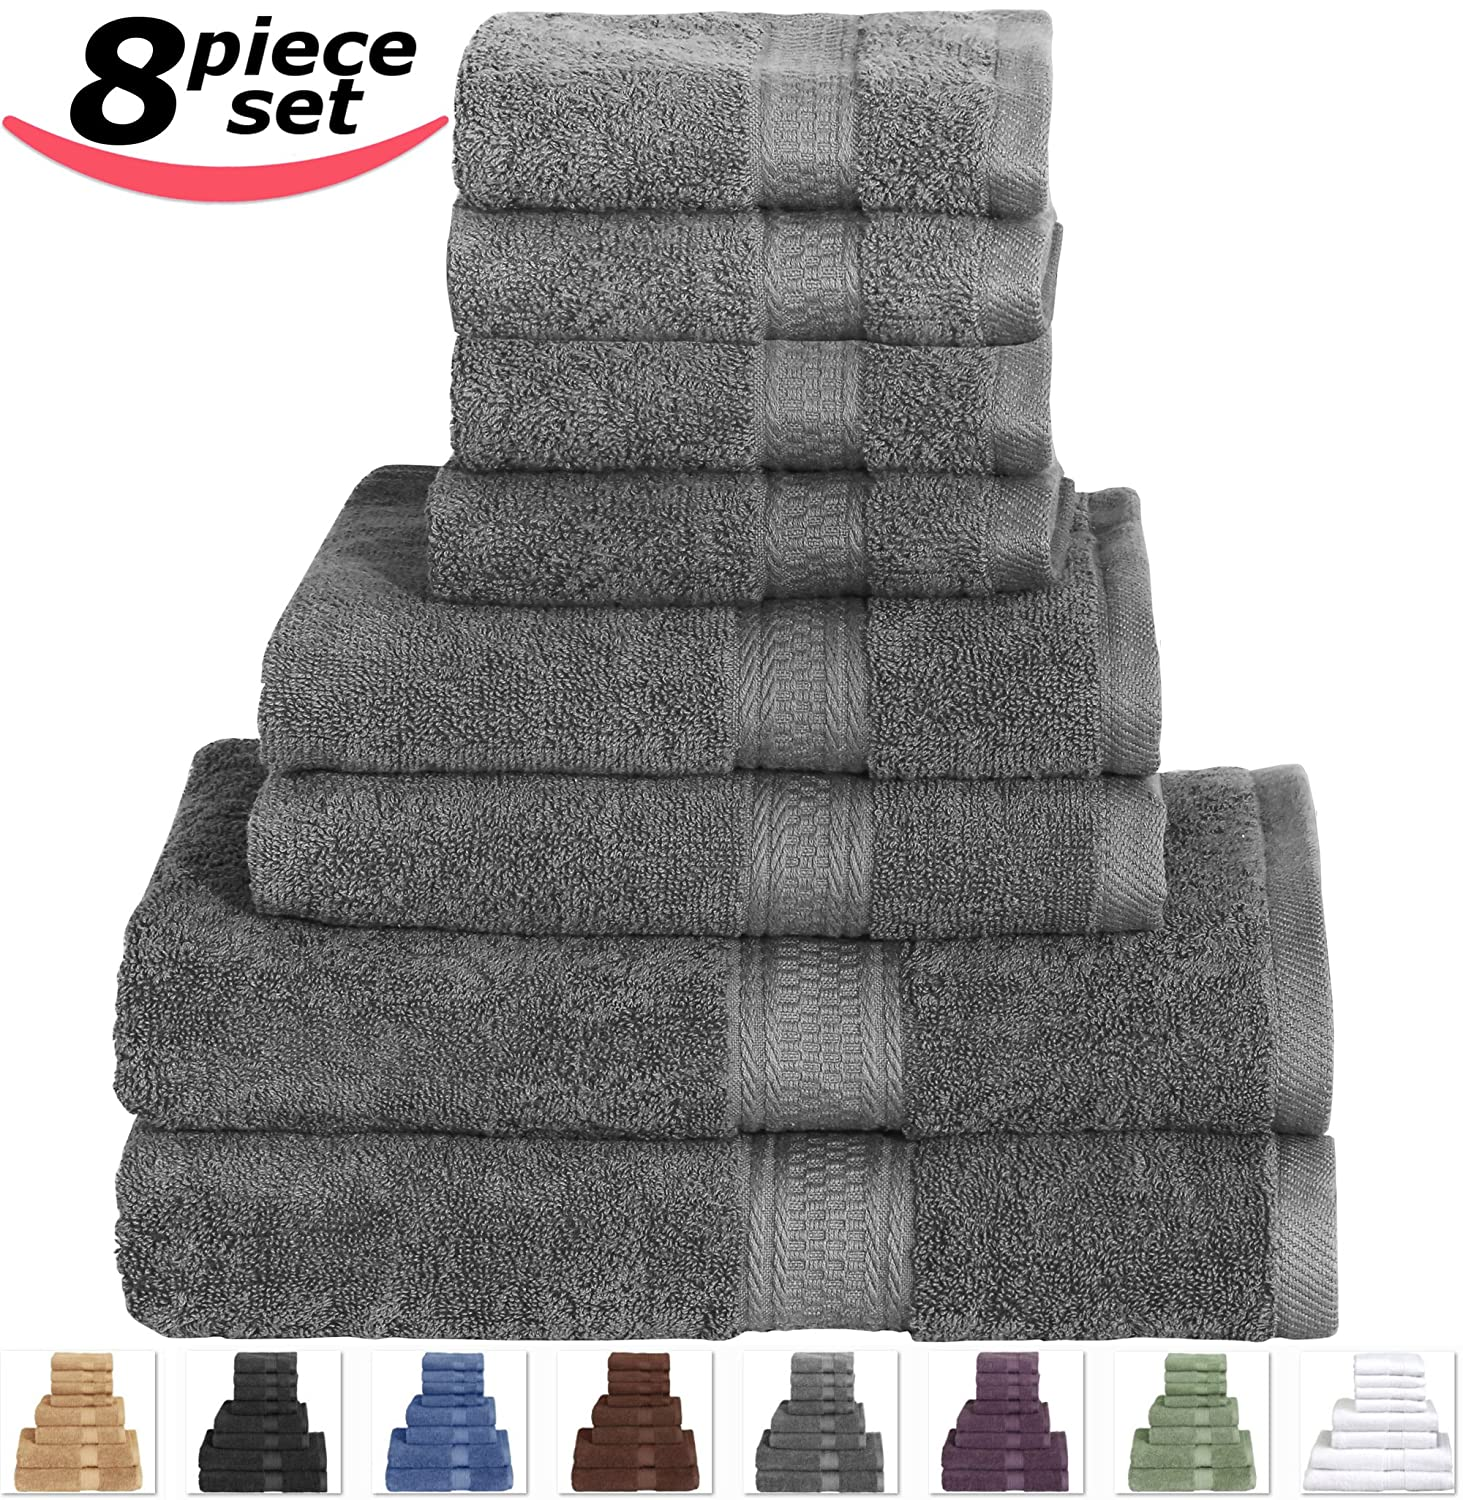 Cotton Bath Towel Set Grey - 8 Piece includes 2 Bath Towels, 2 Hand Towels, and 4 Washcloths - By Utopia Towels